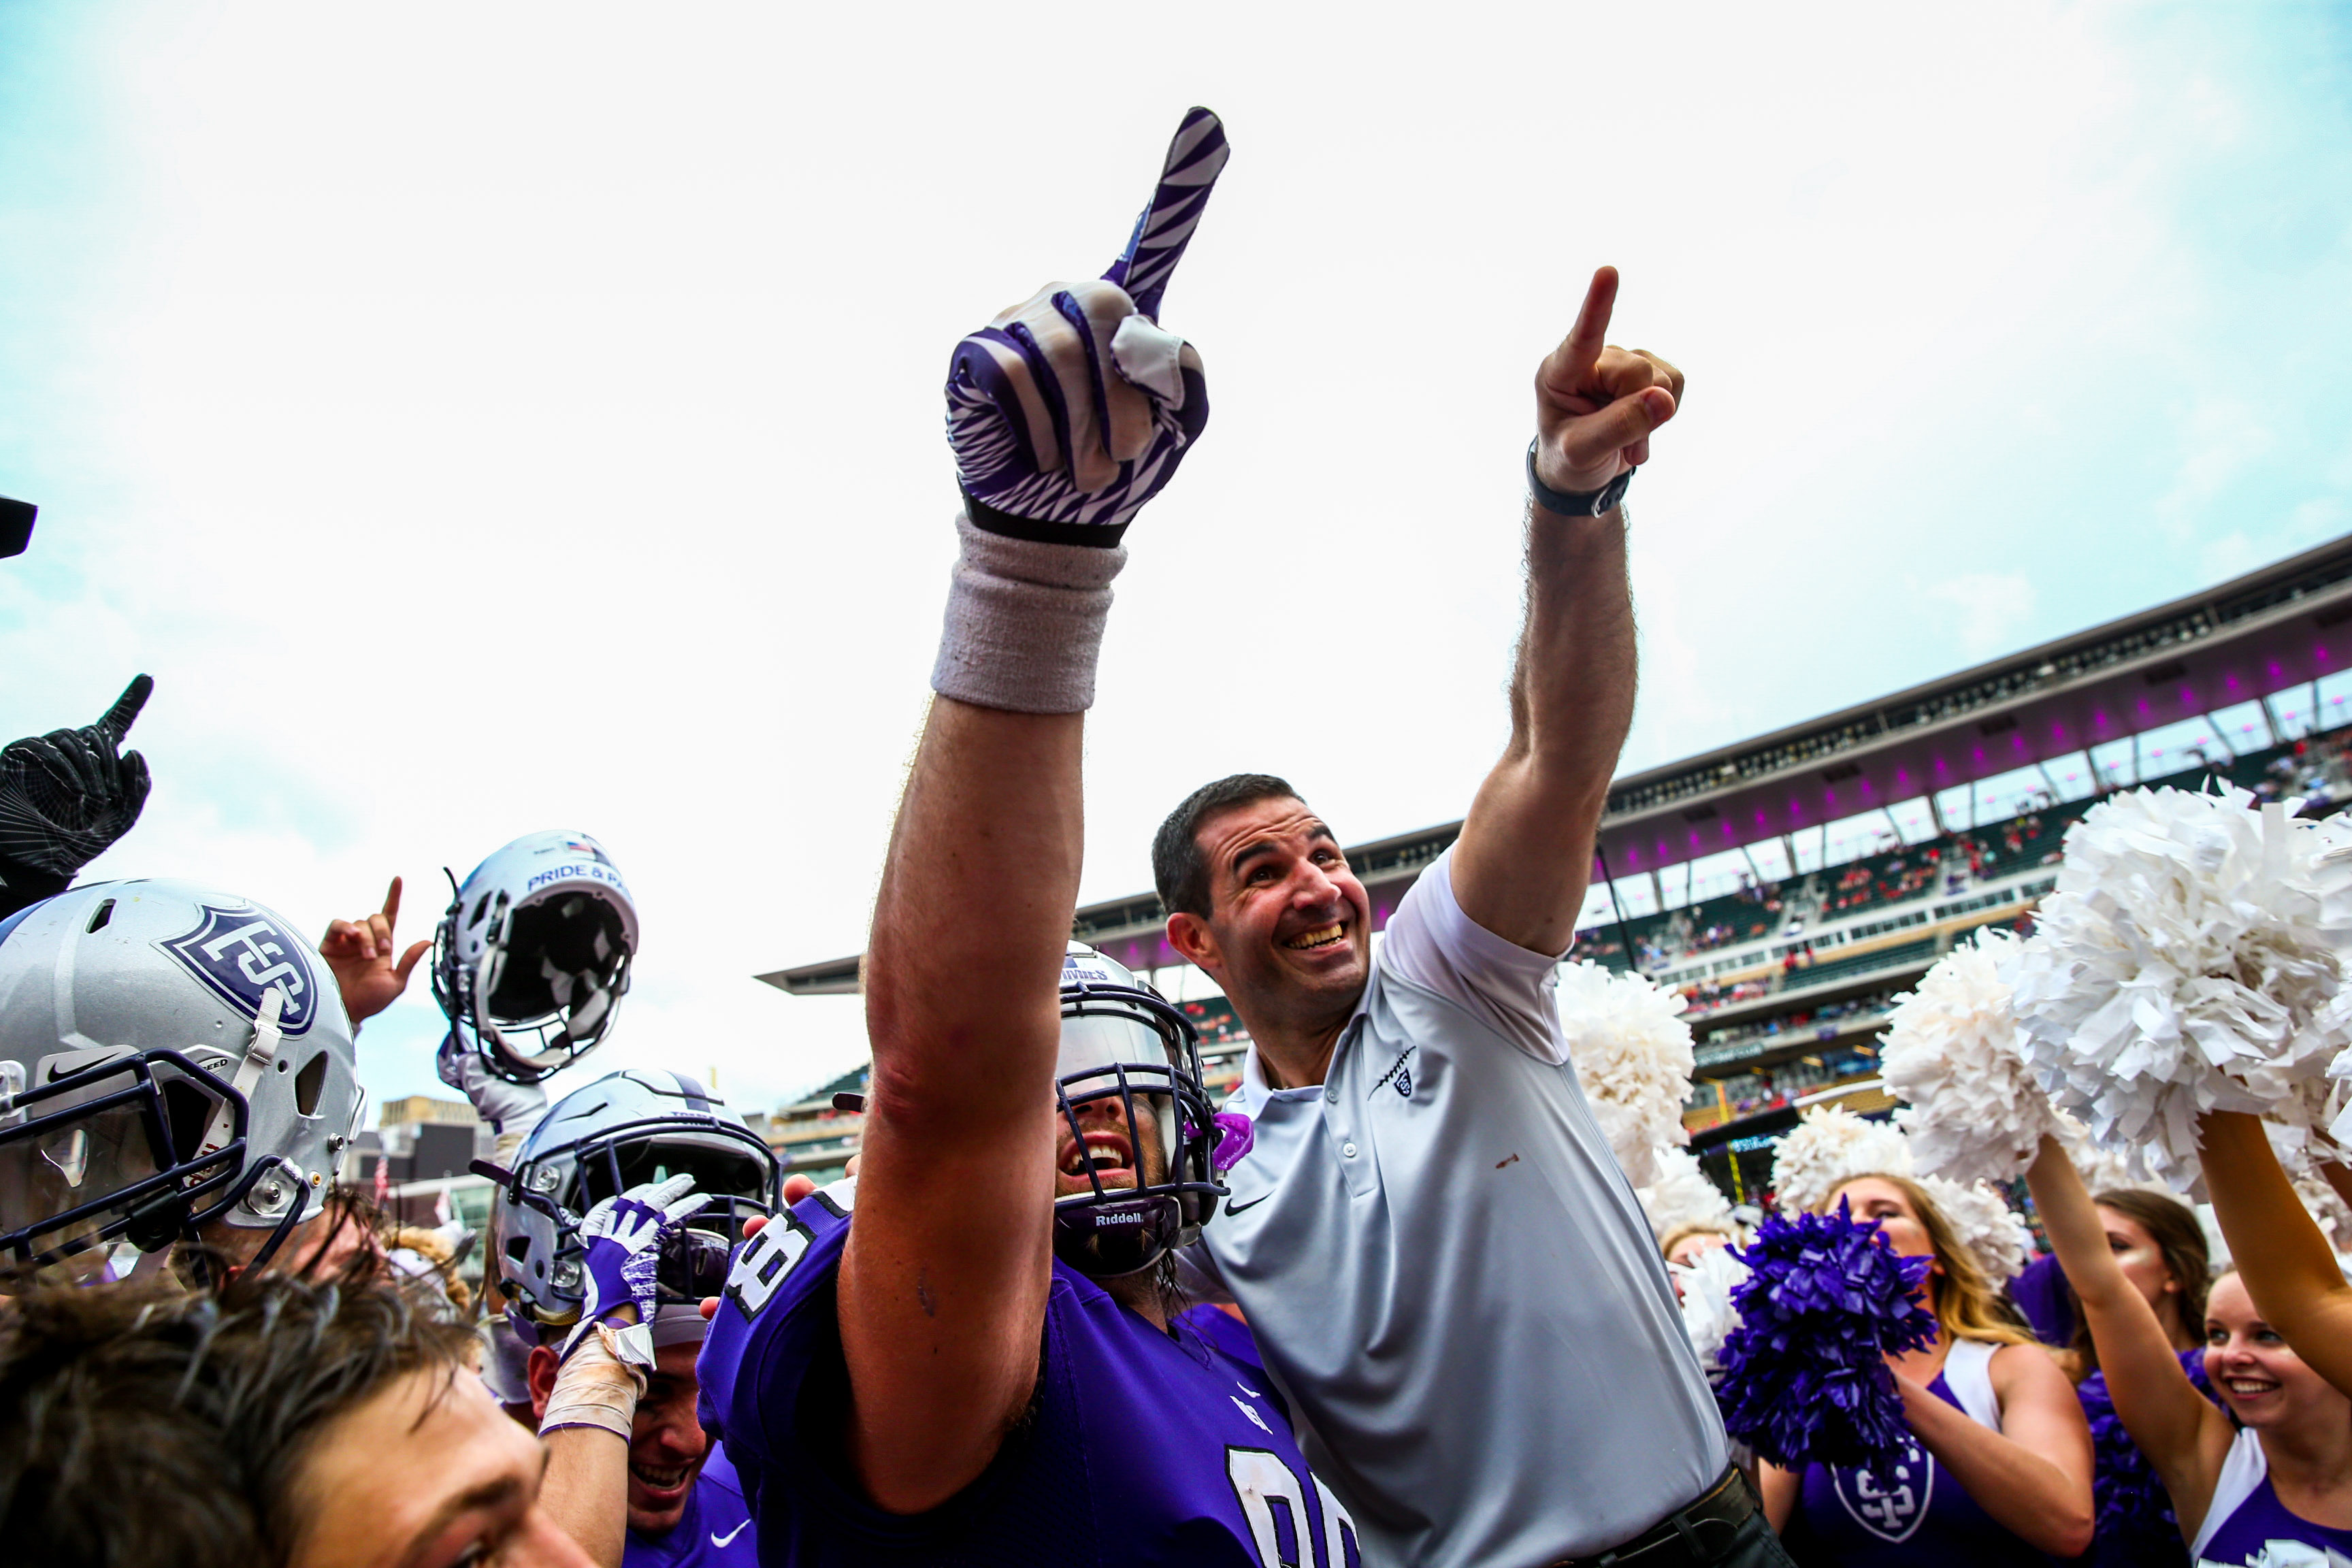 Coach Glenn Caruso and the Tommies celebrate their victory.